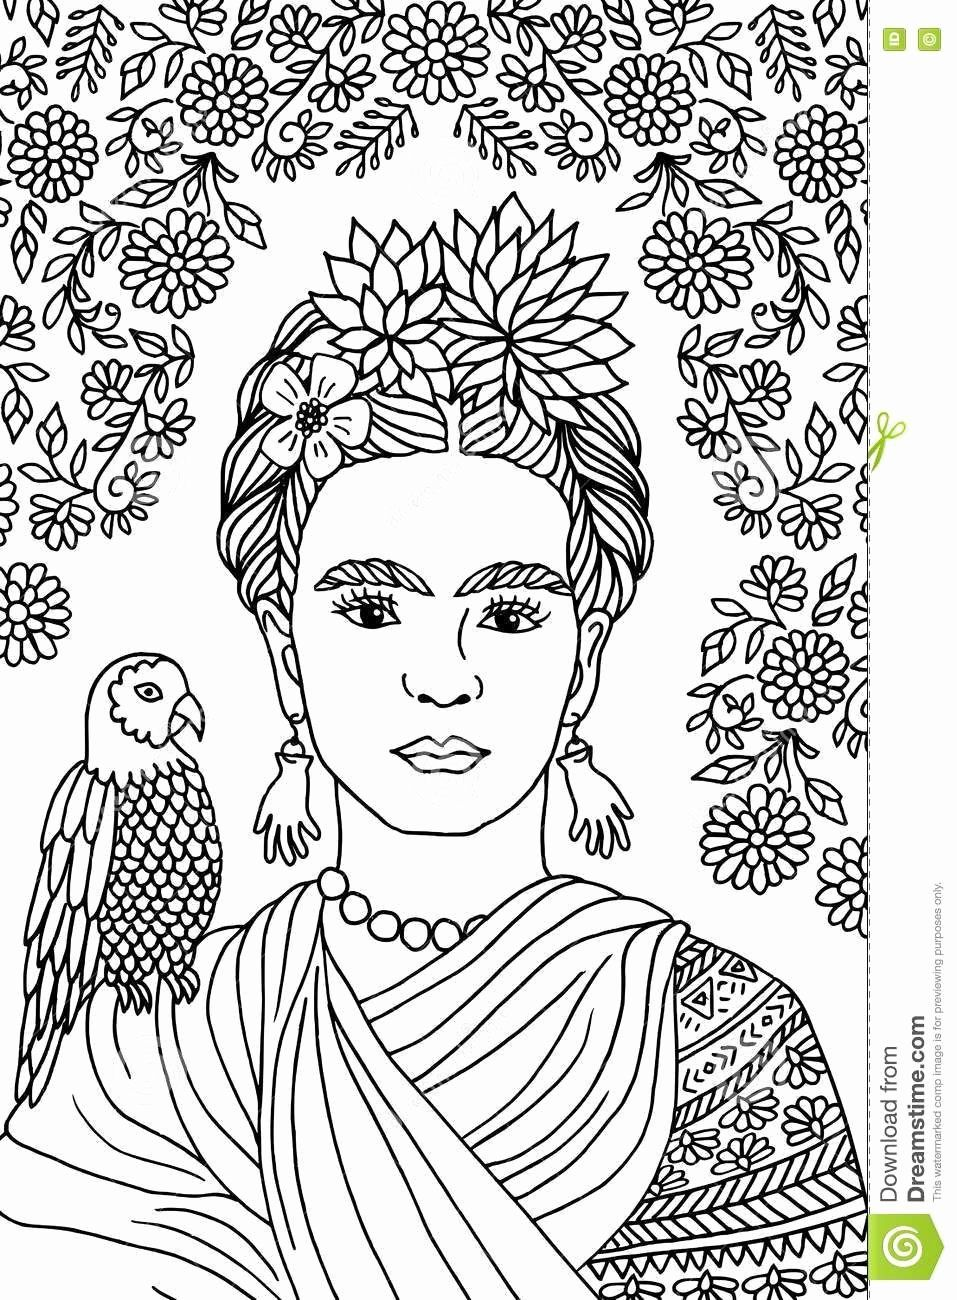 Frida Kahlo Coloring Page Luxury Related Image Frida Kahlo In 2019 Hand Drawn Portraits How To Draw Hands Drawings